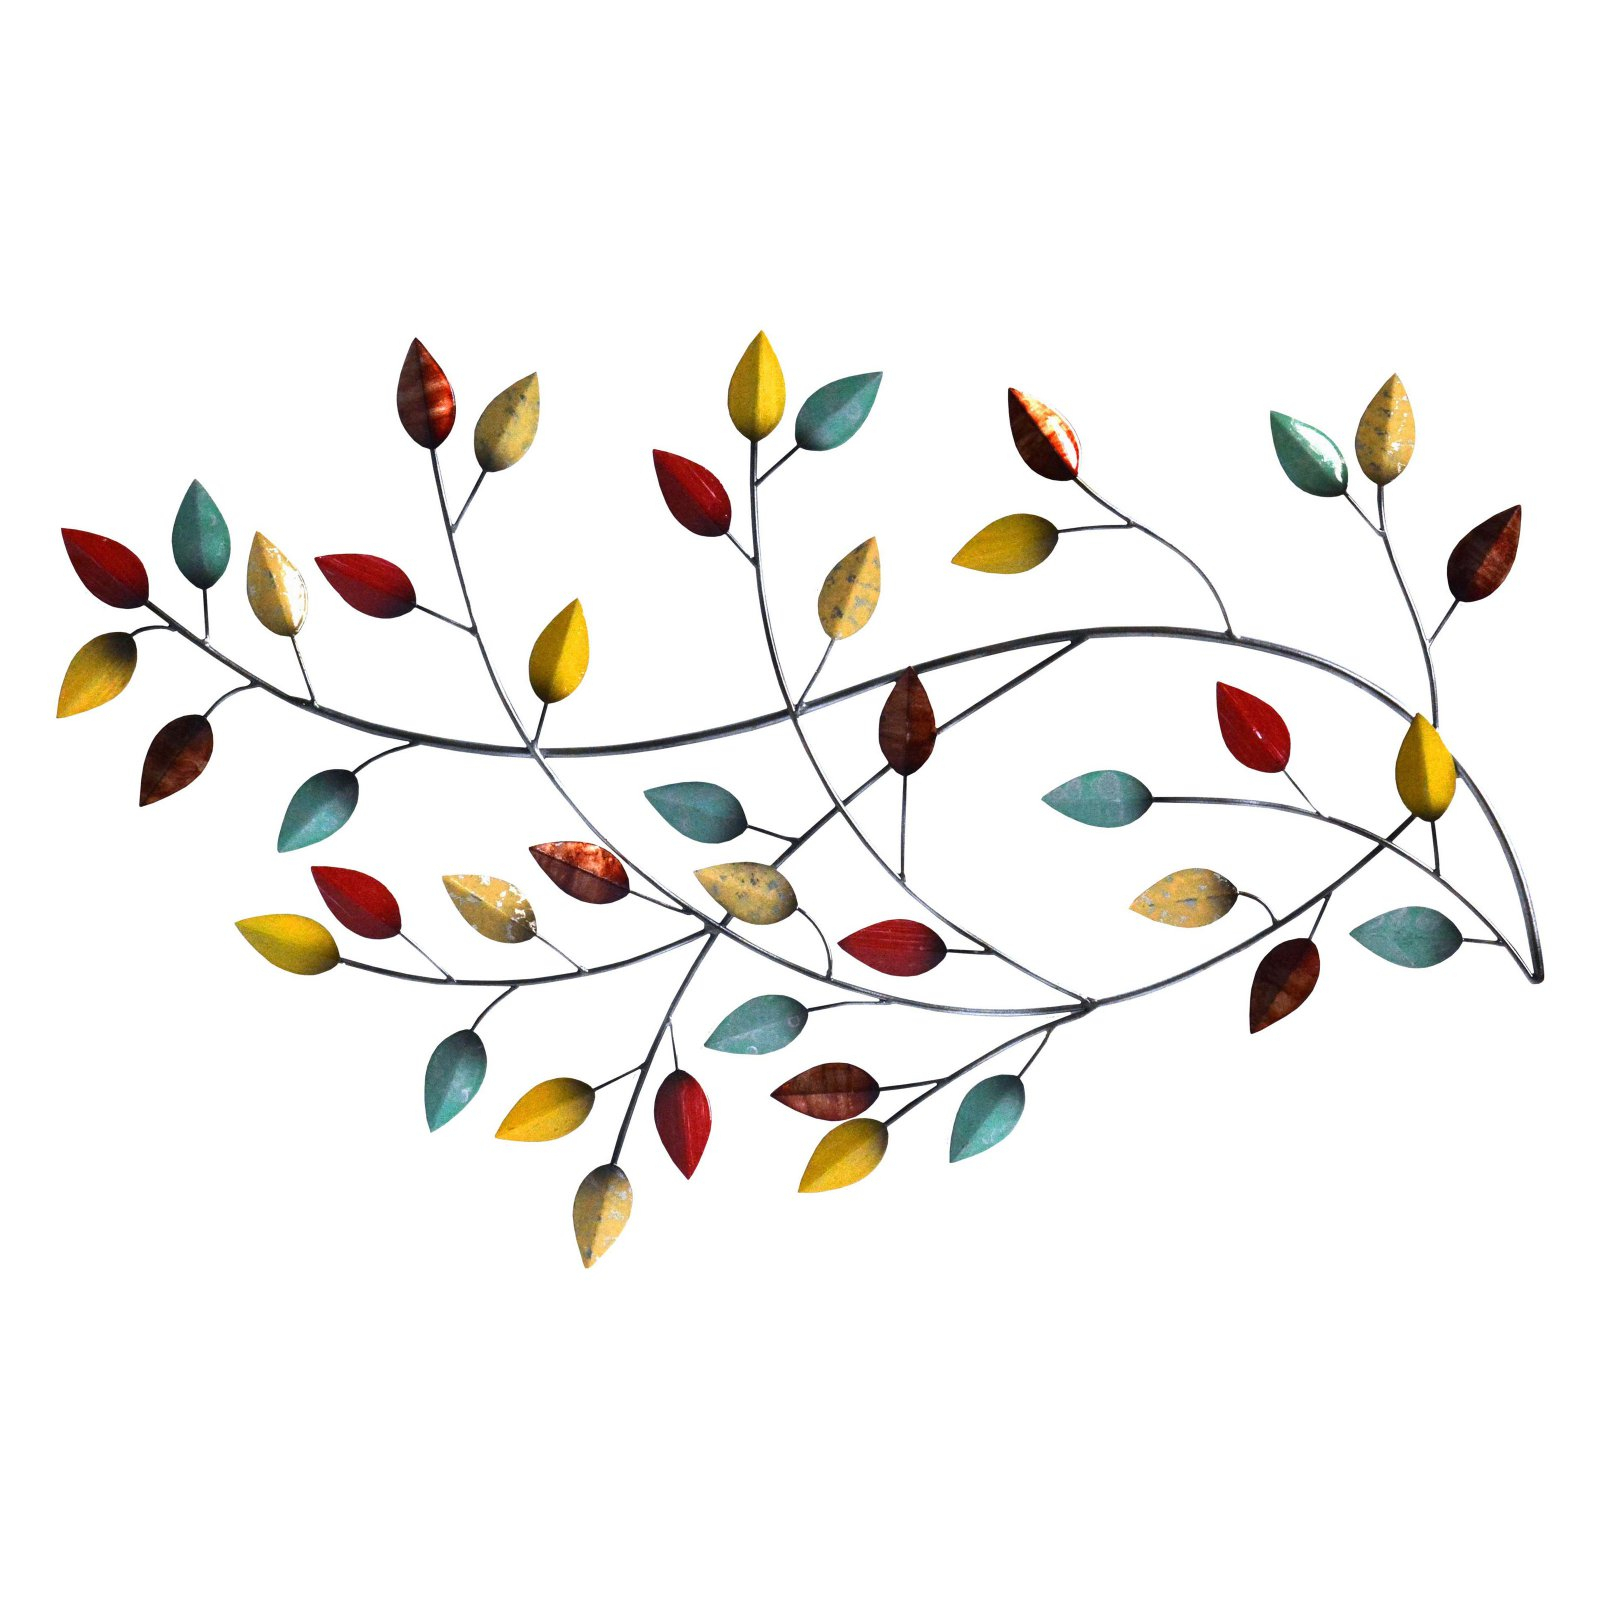 Stratton Home Decor Autumn Blowing Leaves Wall Decor throughout Blowing Leaves Wall Decor (Image 18 of 30)